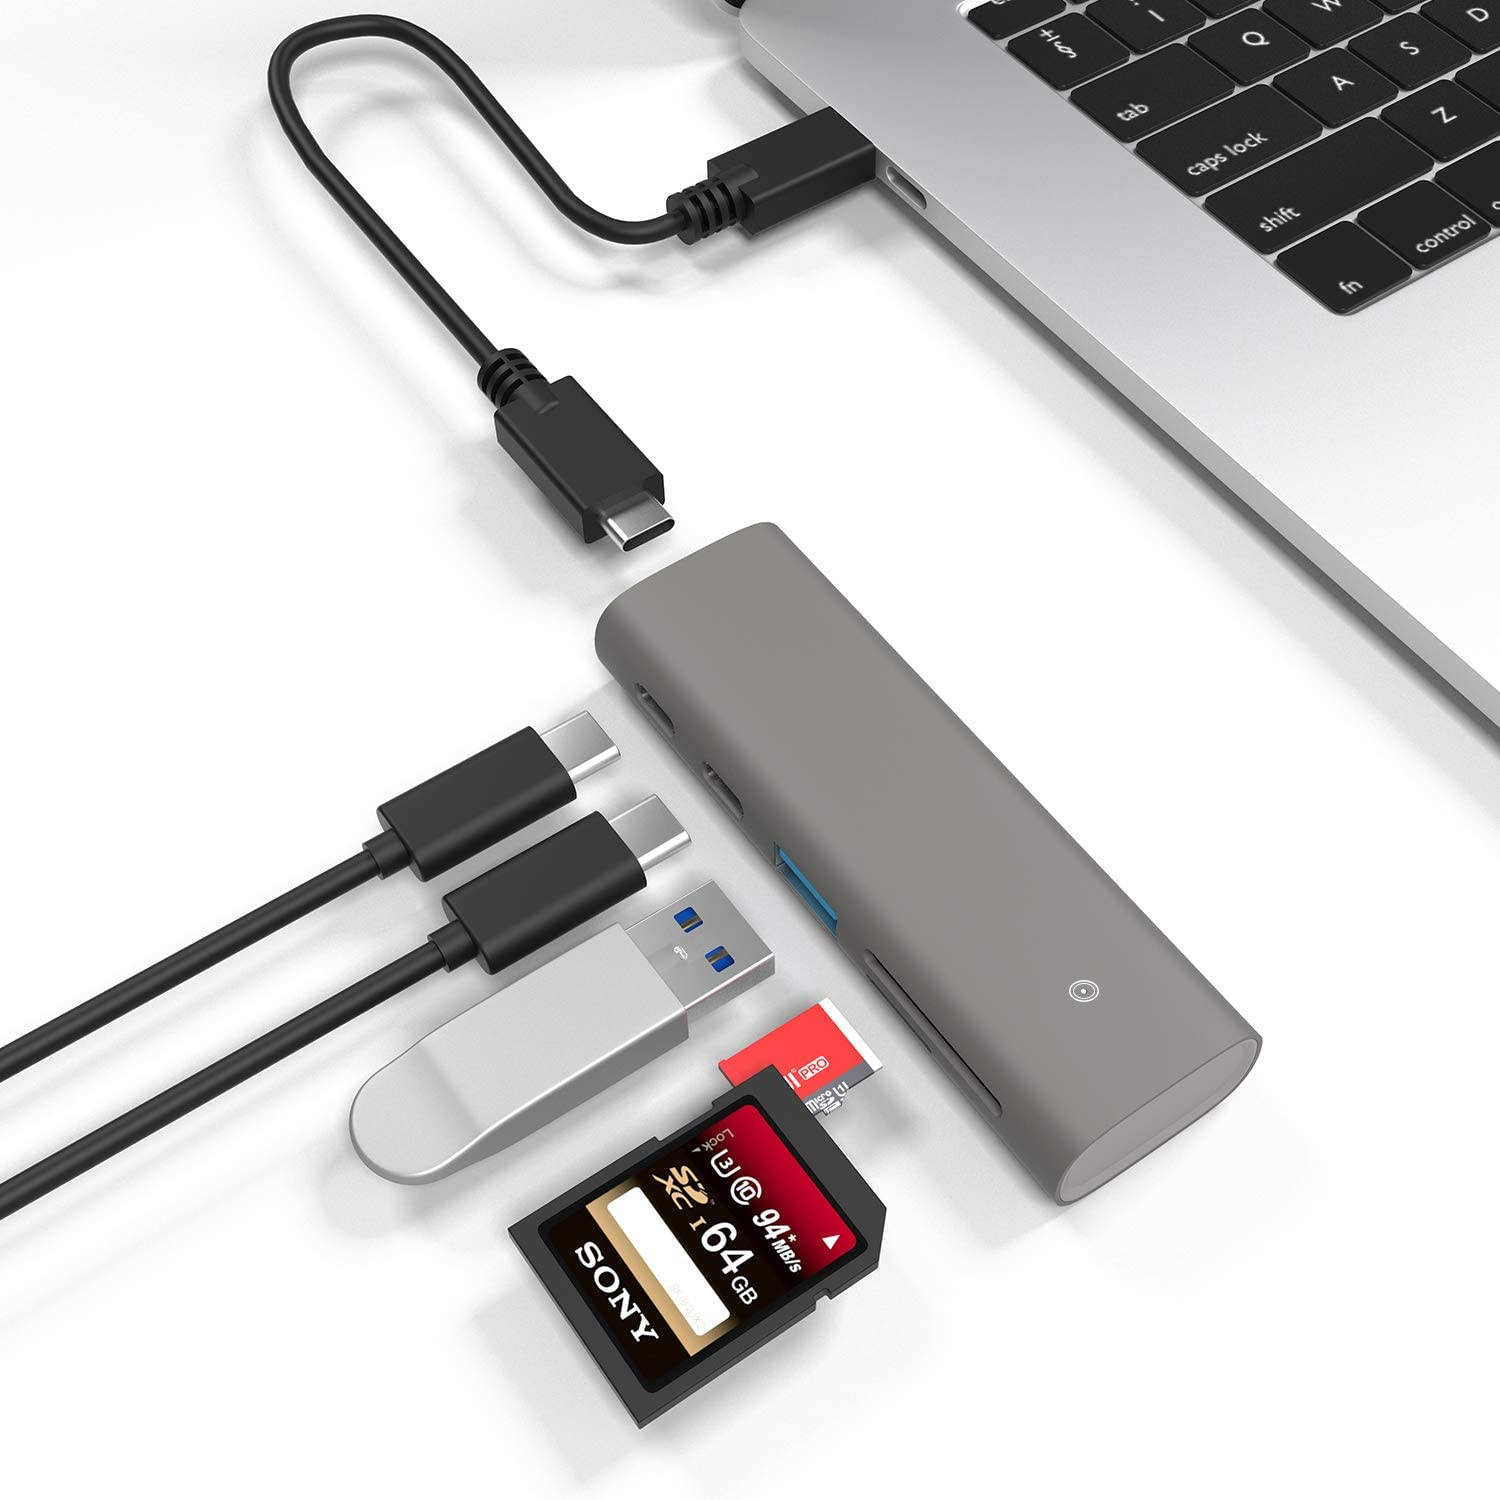 Type C USB 3.1 Gen 2 Hub 10Gbps Super Speed Portable USB C Hub Adapter with 2 Type C Ports &1 USB 3.0 Port & SD/TF(Micro SD) Card Reader for Desktop PC/Laptop, Phones, and More with 20cm USB C Cable